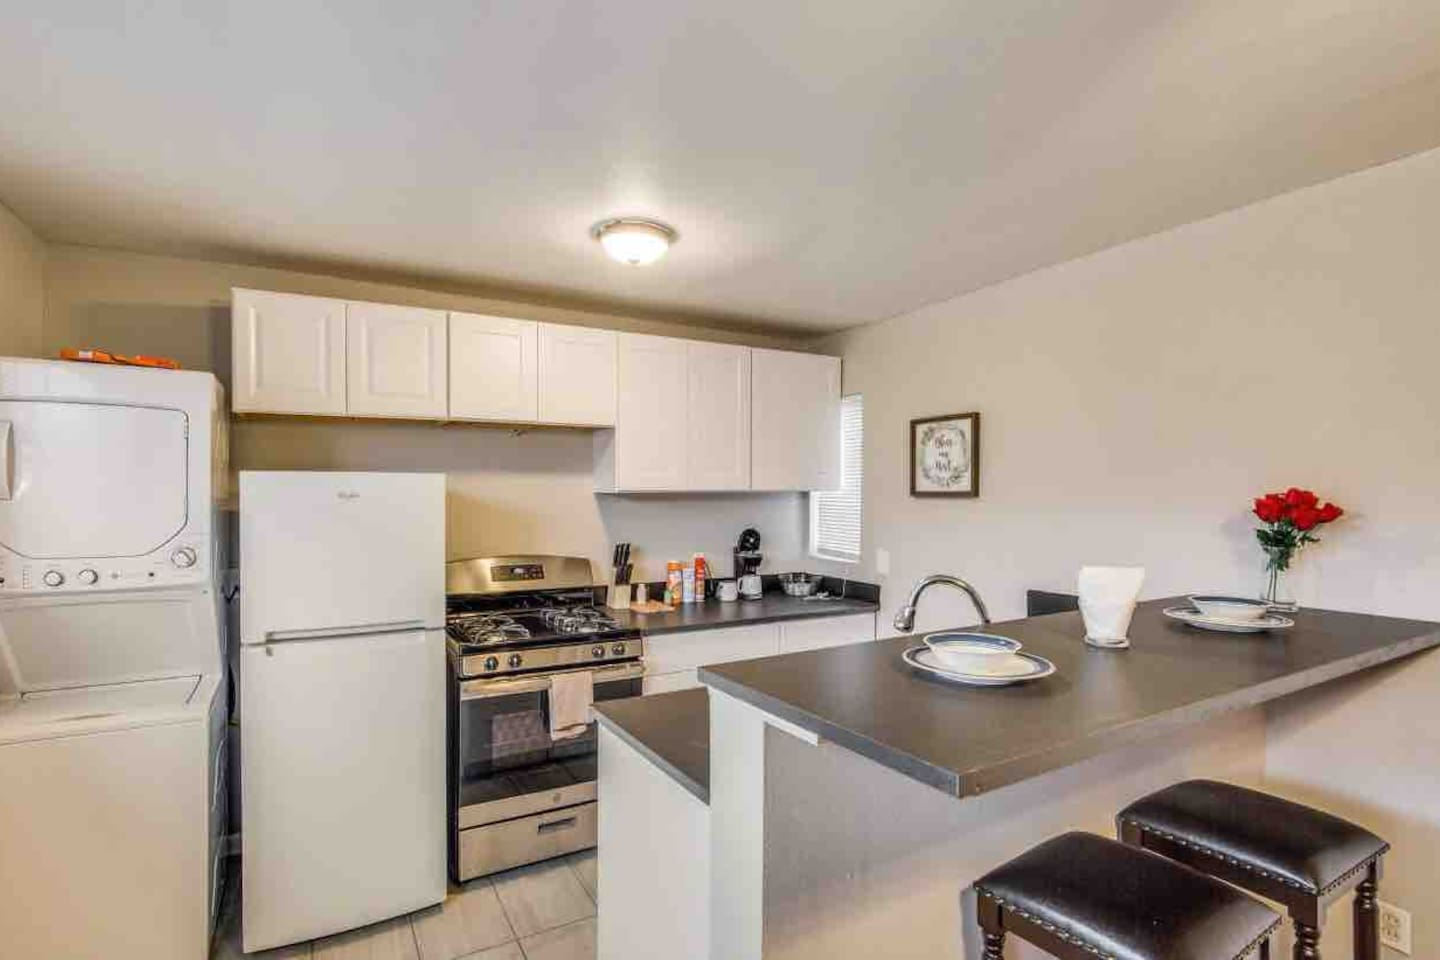 A full kitchen to prepare meals your way. Complete with a washer and dryer.